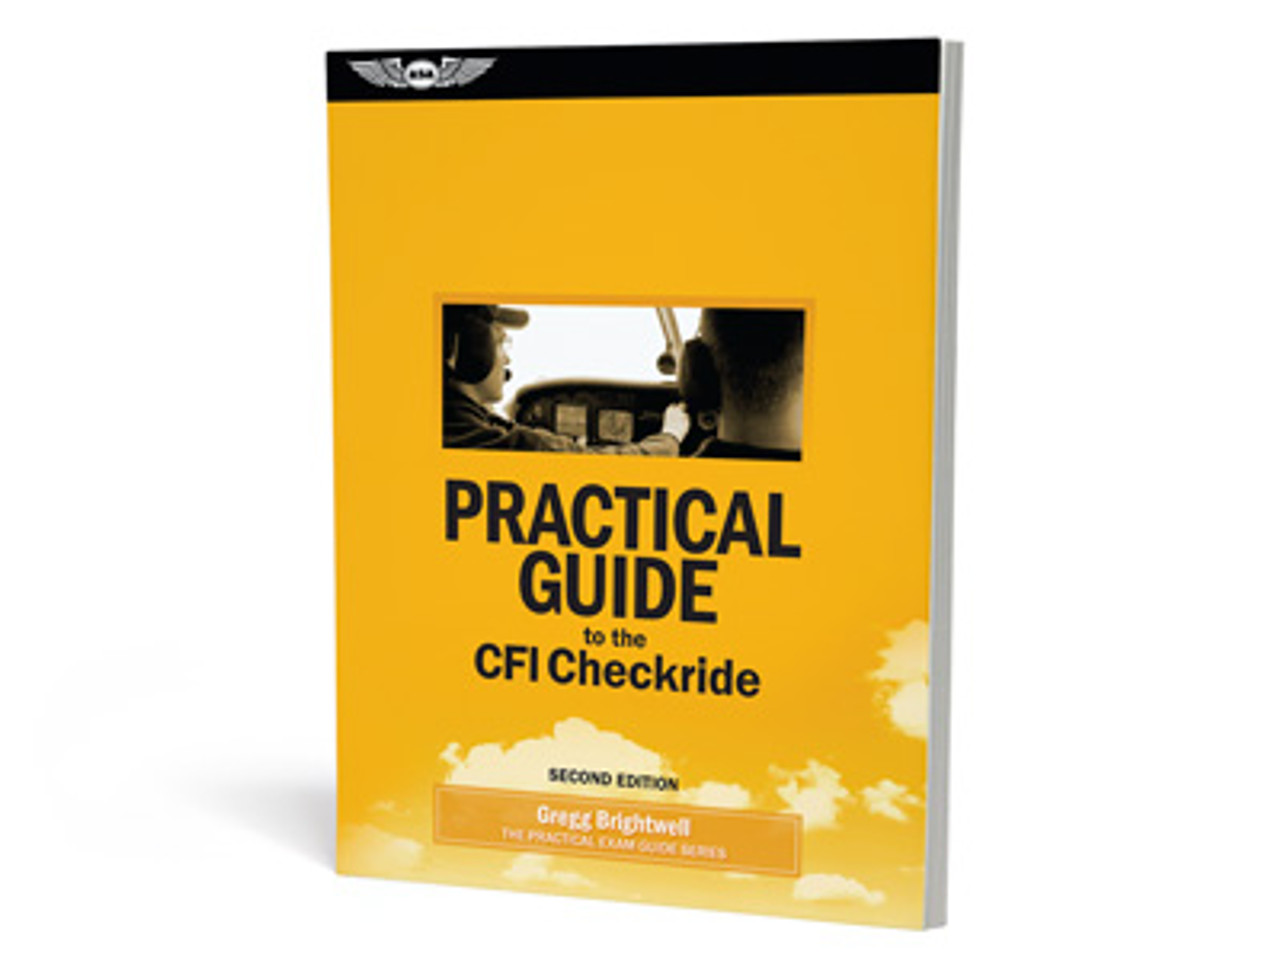 ASA Practical Guide to the CFI Checkride - Second Edition